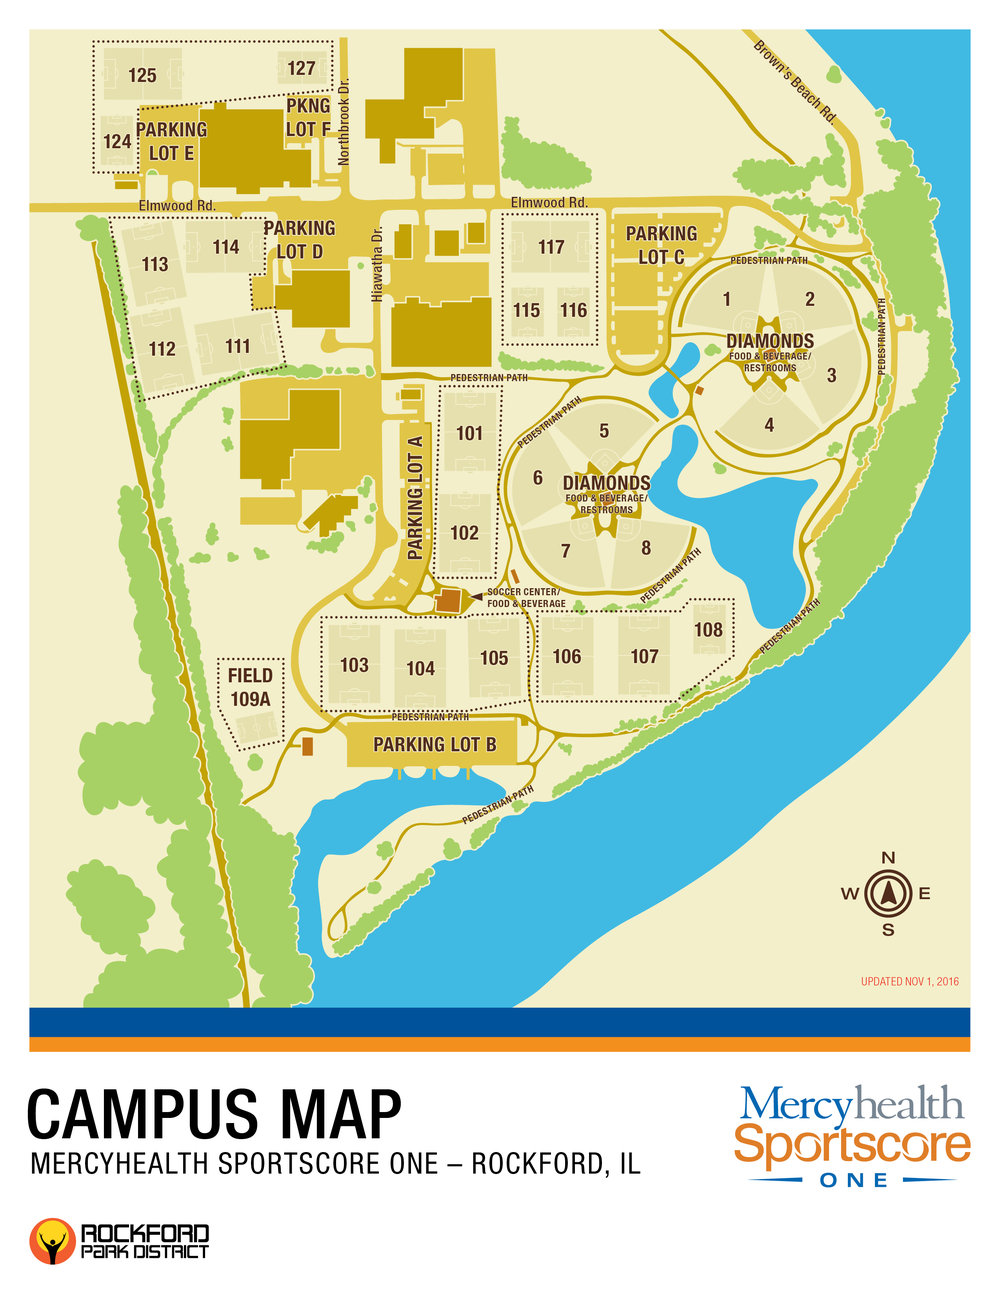 Rockford University Campus Map.Mercyhealth Sportscore One Mercyhealth Sportscore